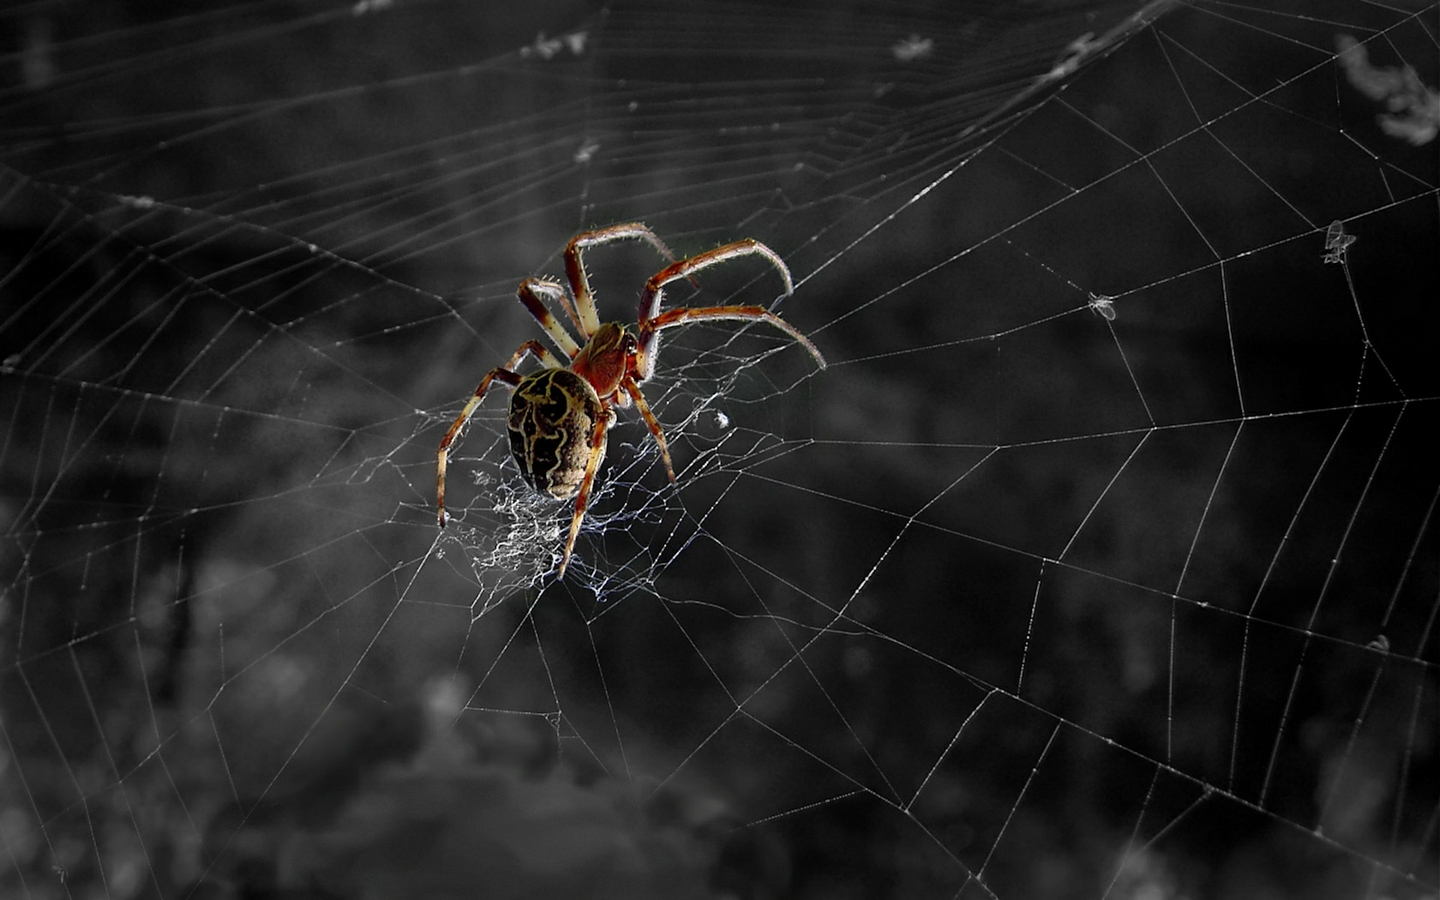 HD Spider Web Wallpaper · Spider Web · Spider Web ...